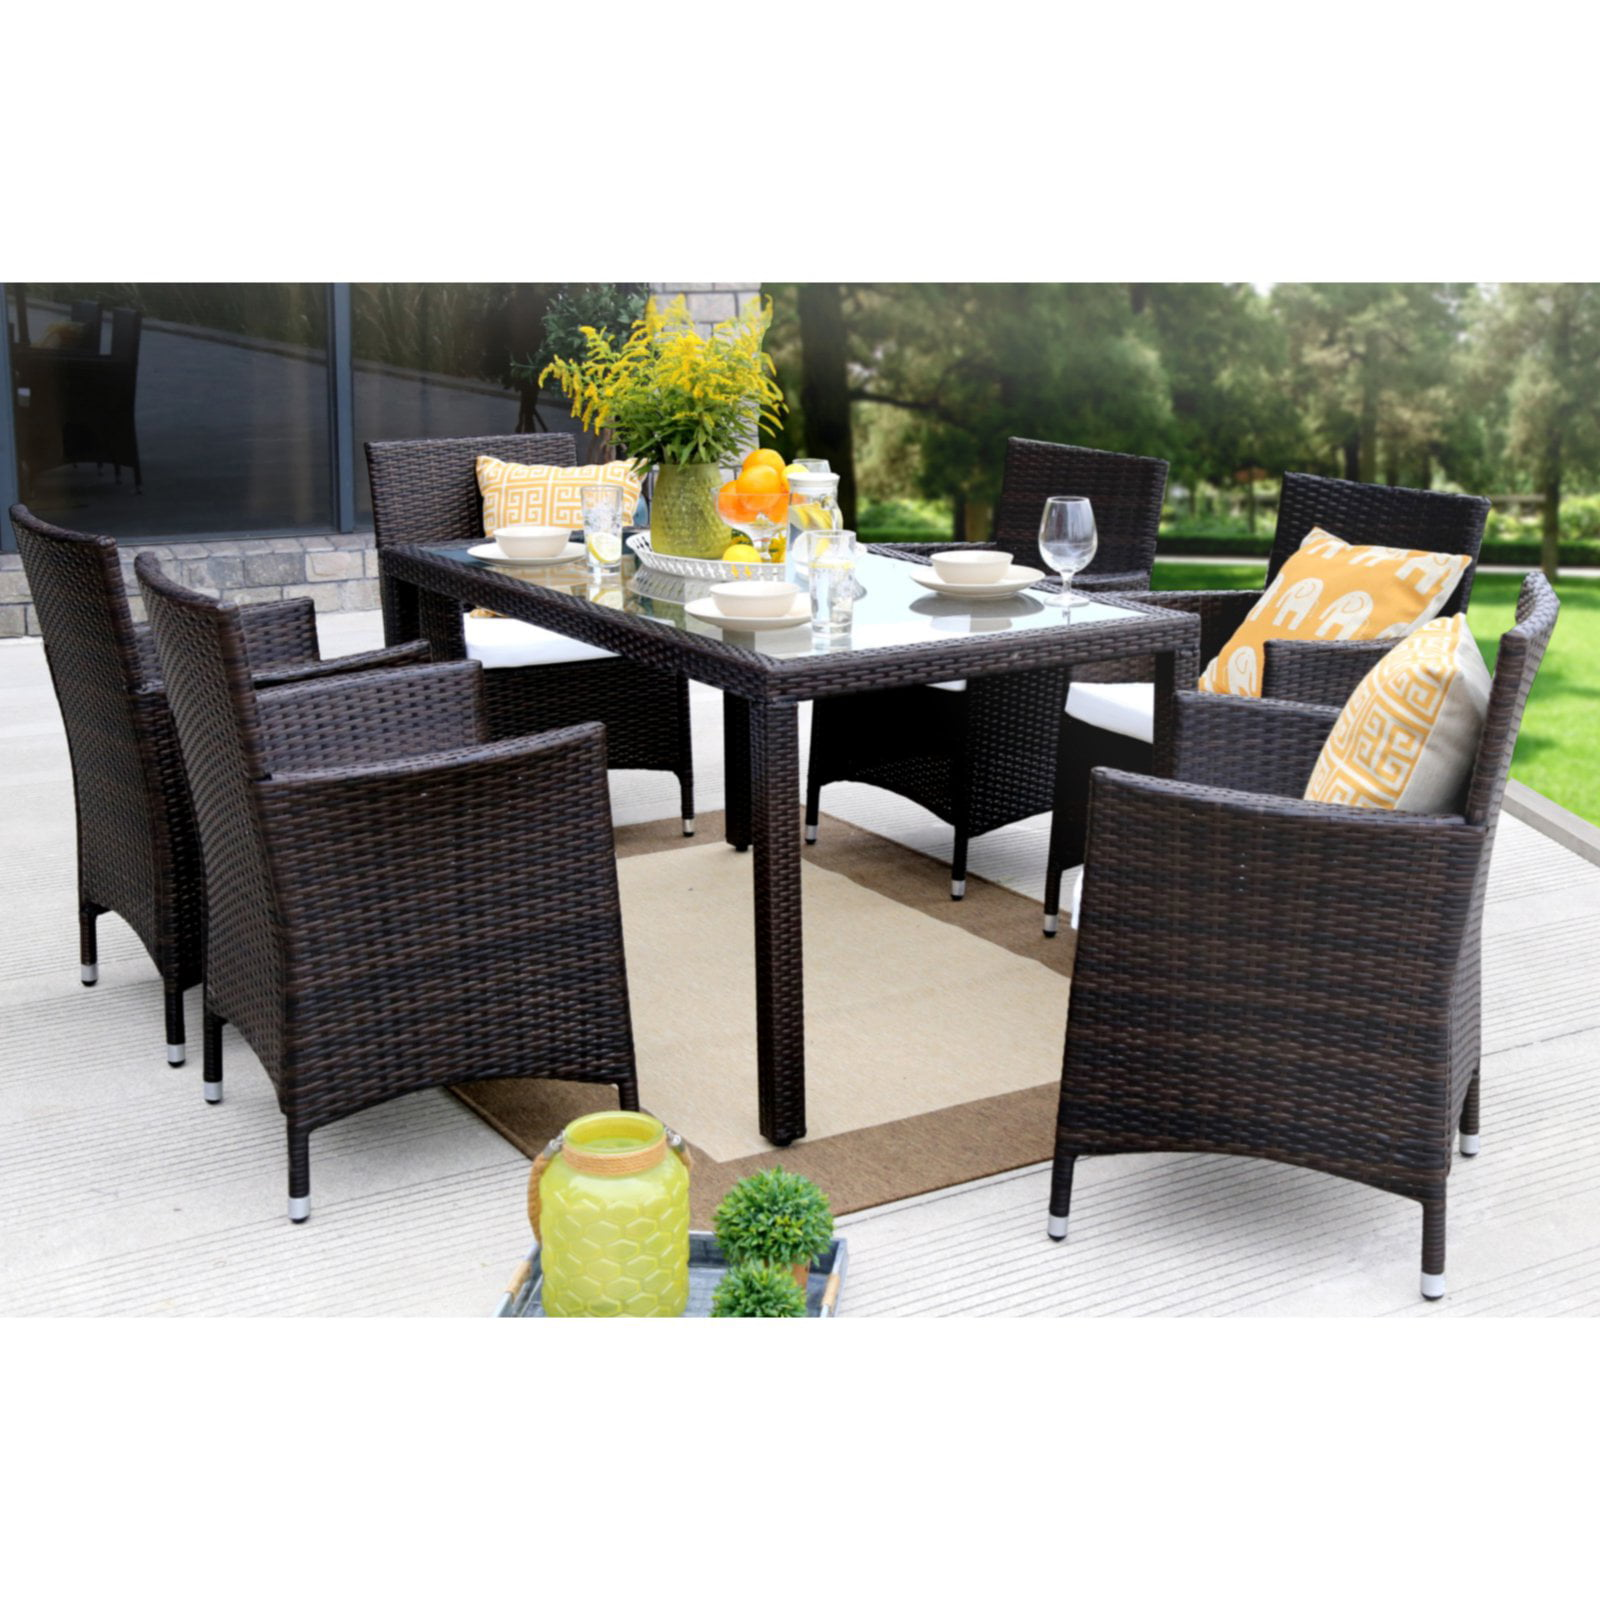 Click here to buy Baner Garden Outdoor Furniture Complete Patio Cushion PE Wicker Rattan Garden Dining Room Set, Brown, 7-Pieces by Overstock.